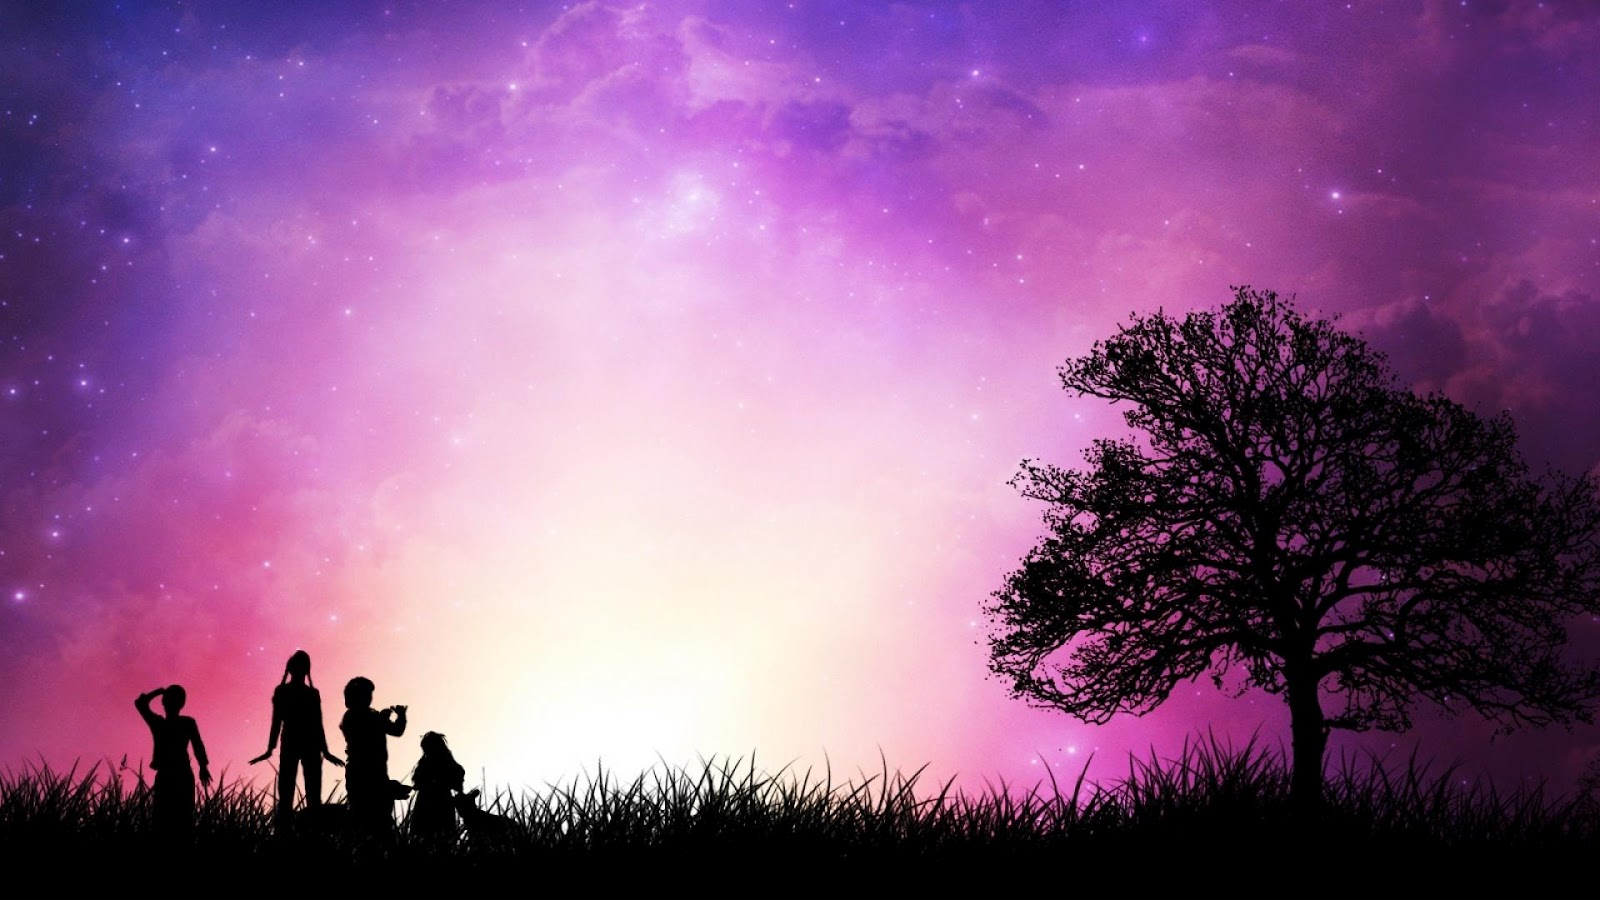 article HD Wallpaper Romantic with the title Romantic Wallpapers 1600x900